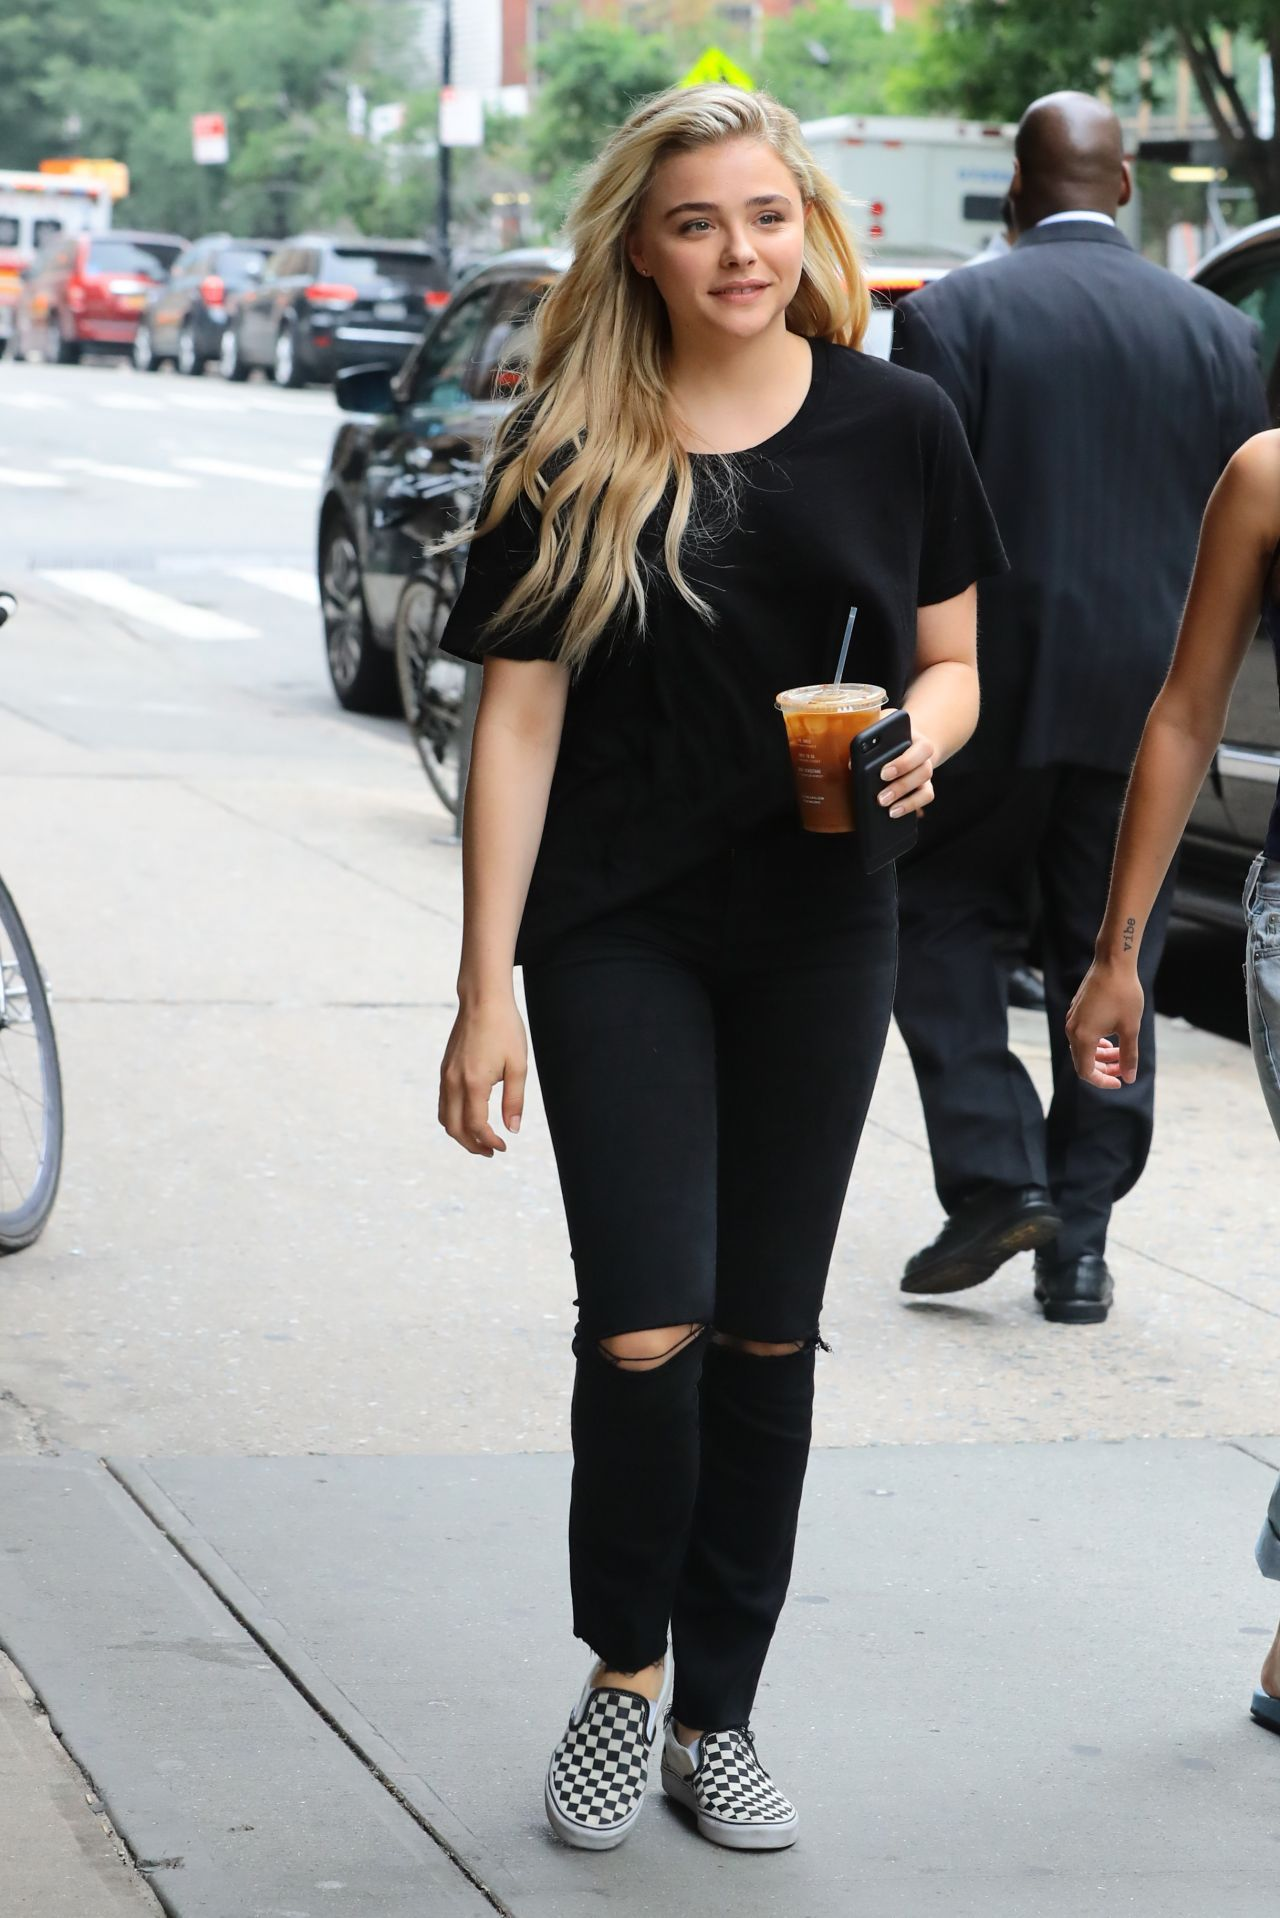 Chloe Moretz Street Style - Out in Beverly Hills - July